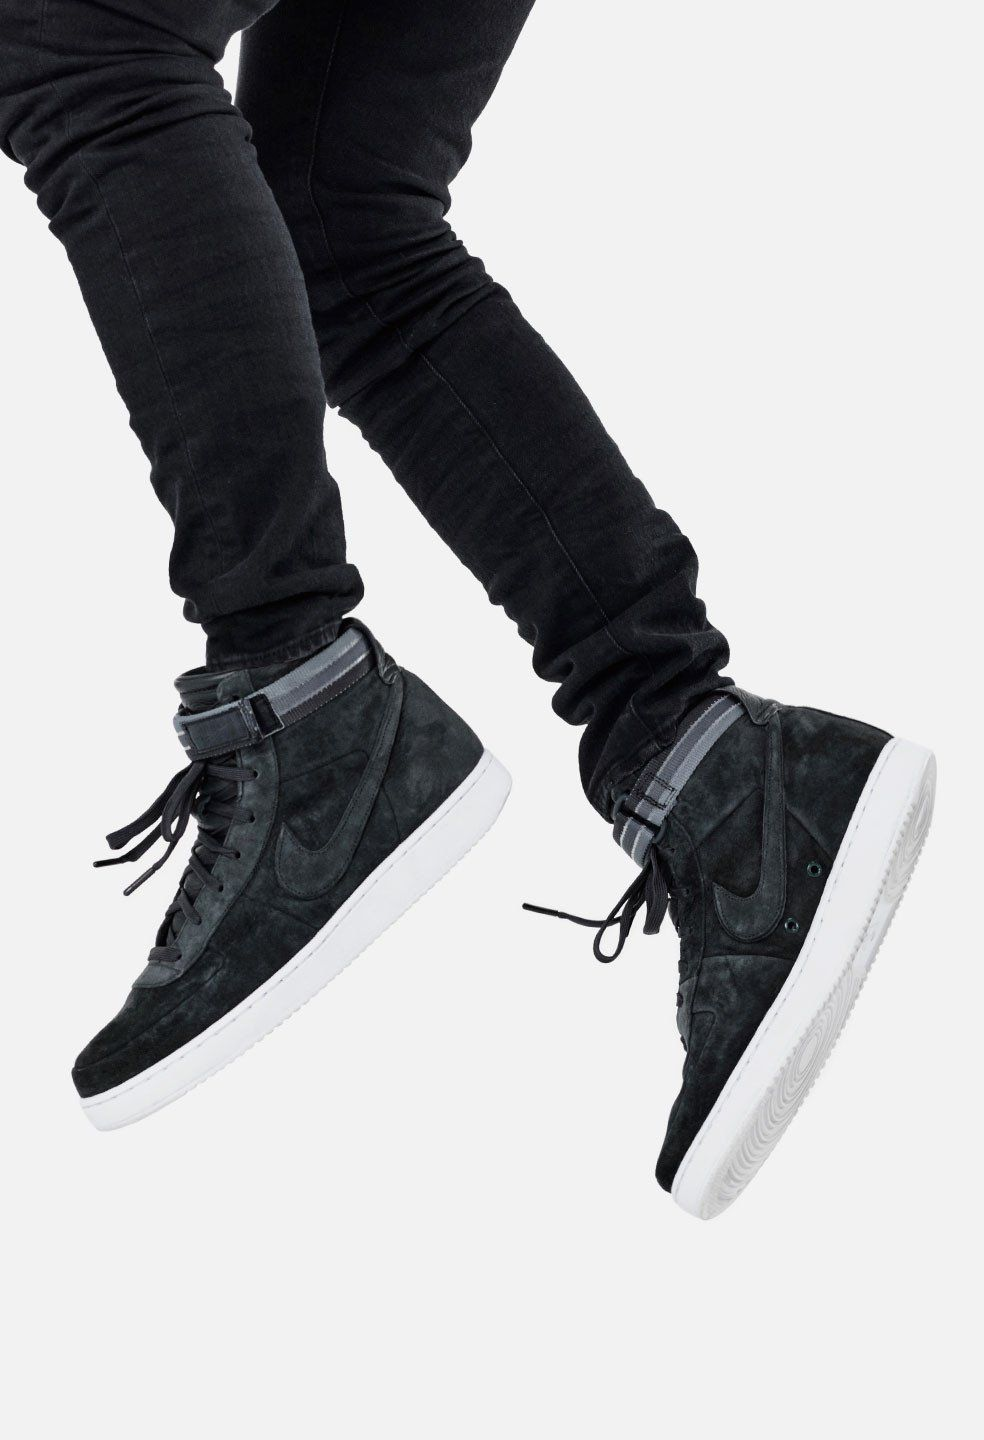 premium selection e4e9d e0322 John Elliott x NikeLab Vandal High   Anthracite